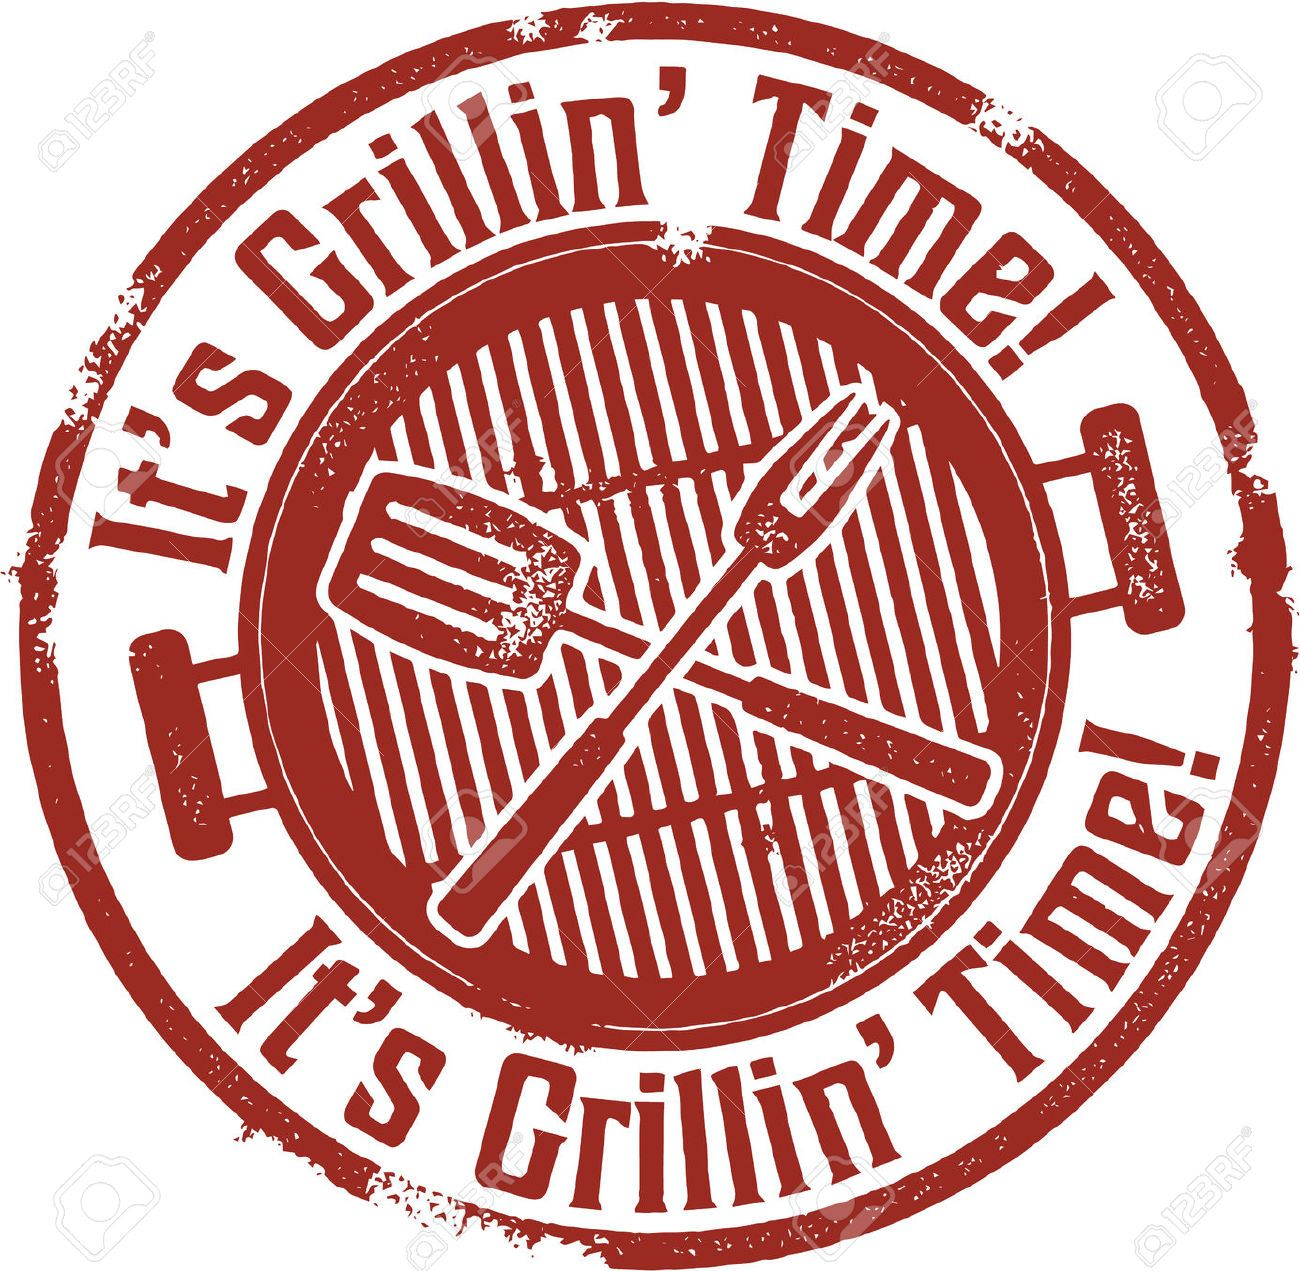 small resolution of it s grilling bbq time royalty free cliparts vectors and stock illustration pic 27874236